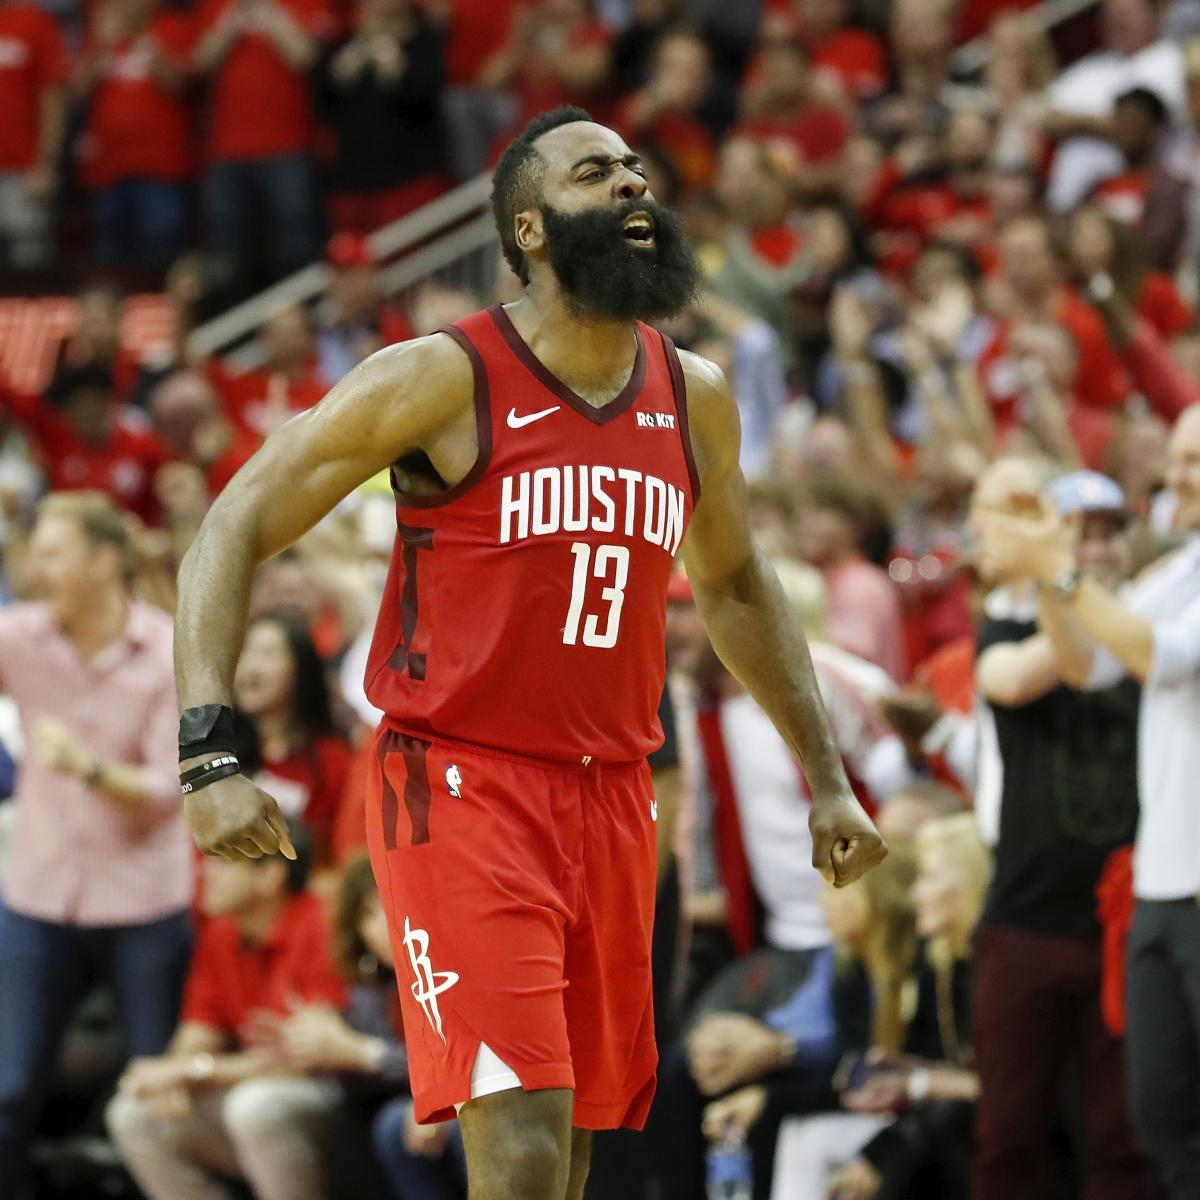 Nba2k19 James Harden: NBA L2M Report: James Harden Committed A Charge On Game 3